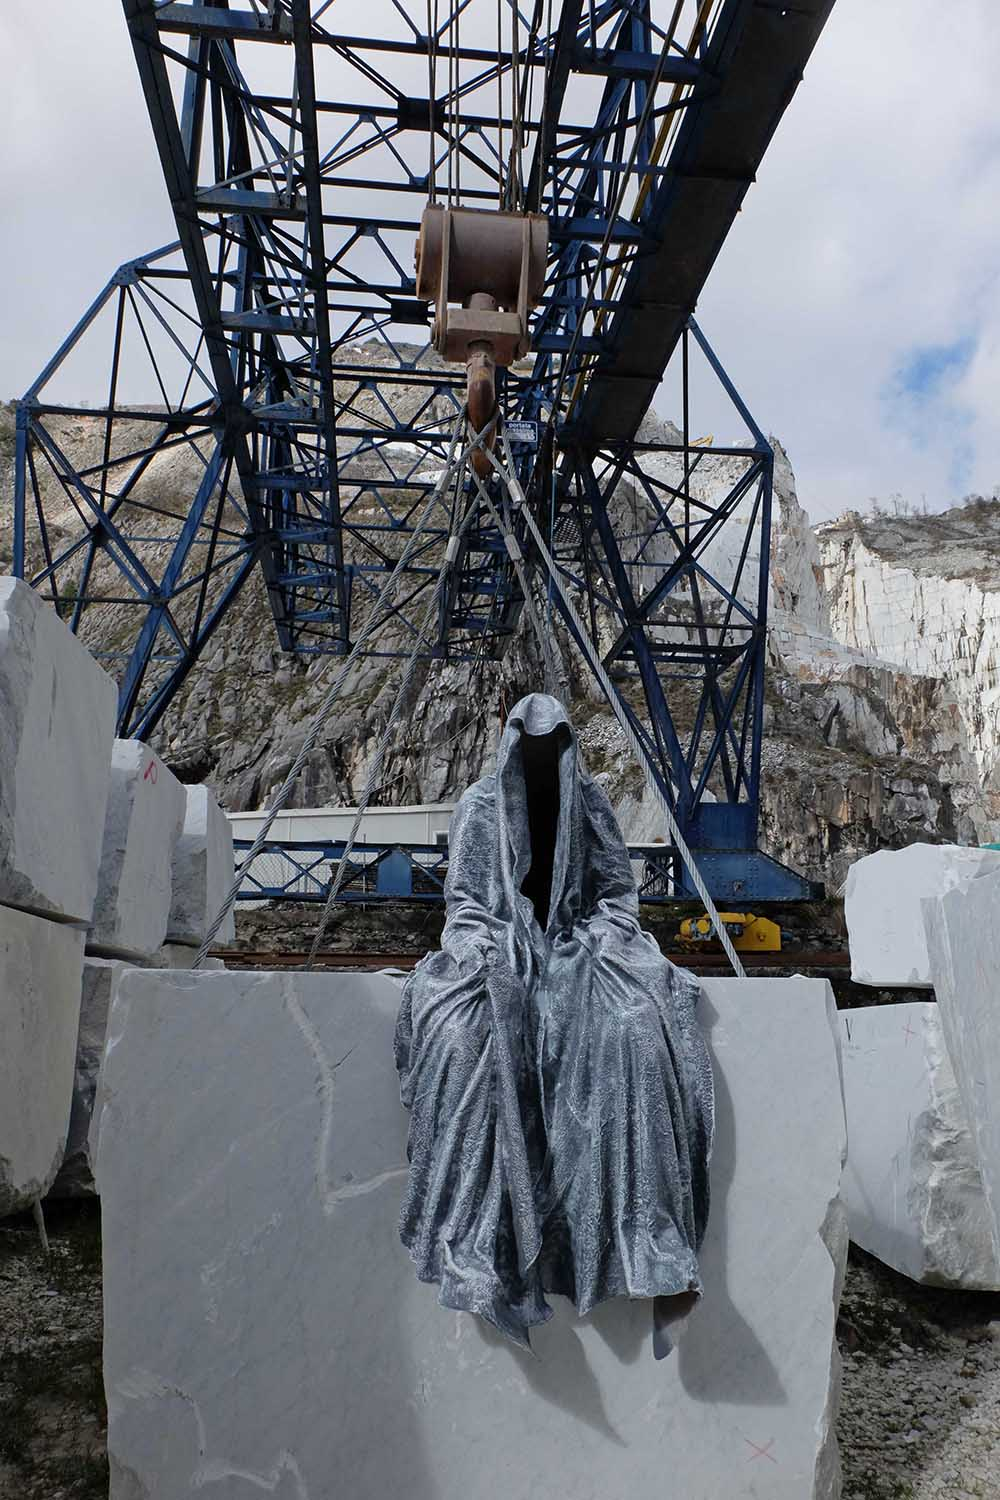 guardians of time manfred kili kielnhofer modern sculpture contemporary fine art design arts statue faceless religion stone marble carrara 0958